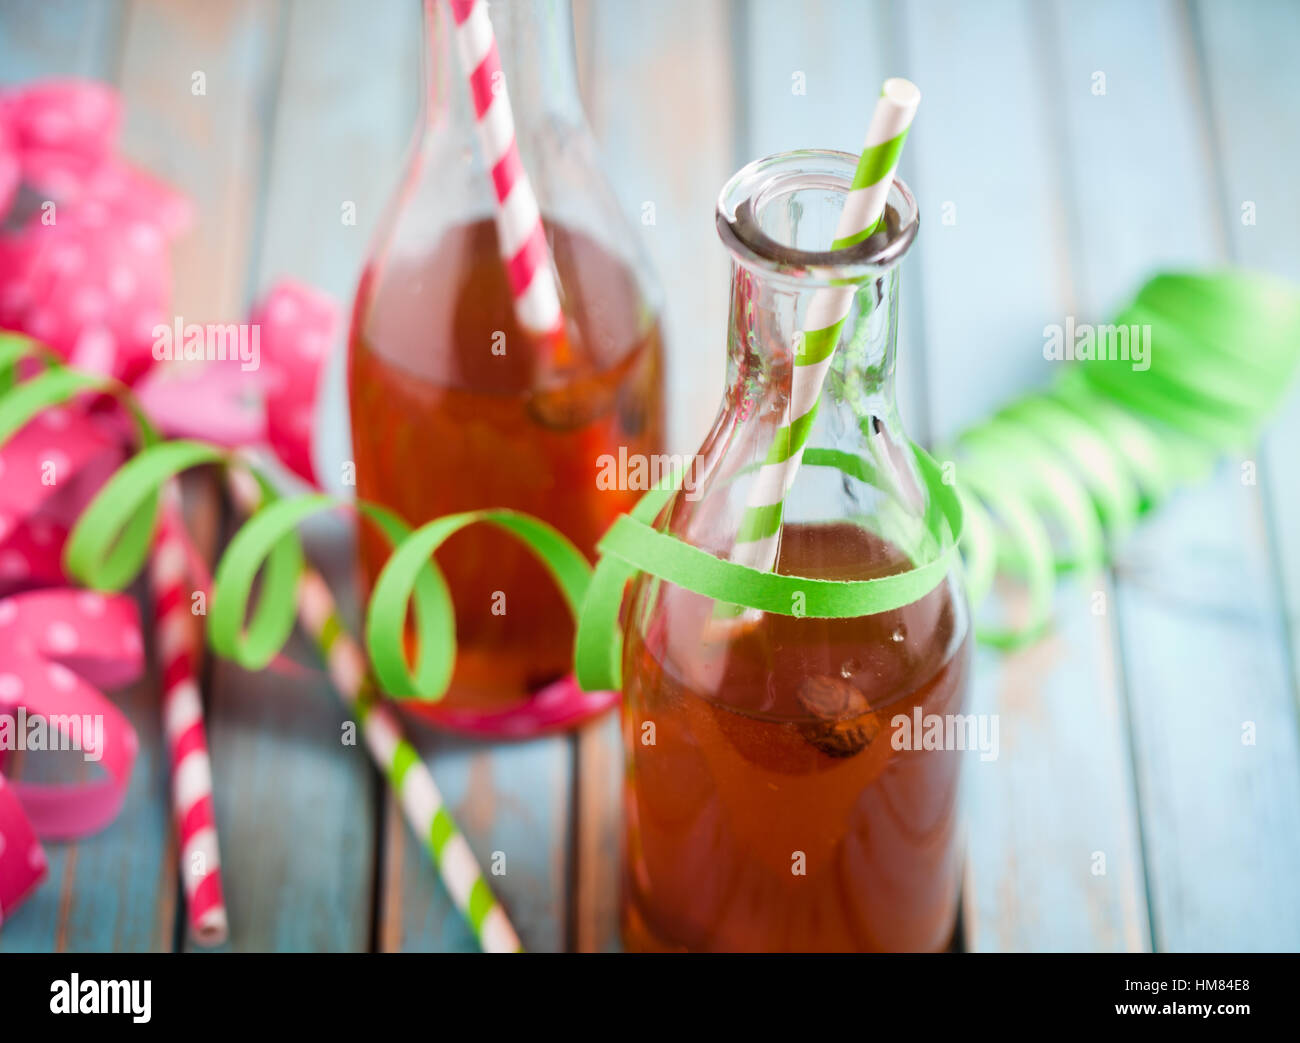 Vappusima, drink for finnish celebration of May 1st - Stock Image